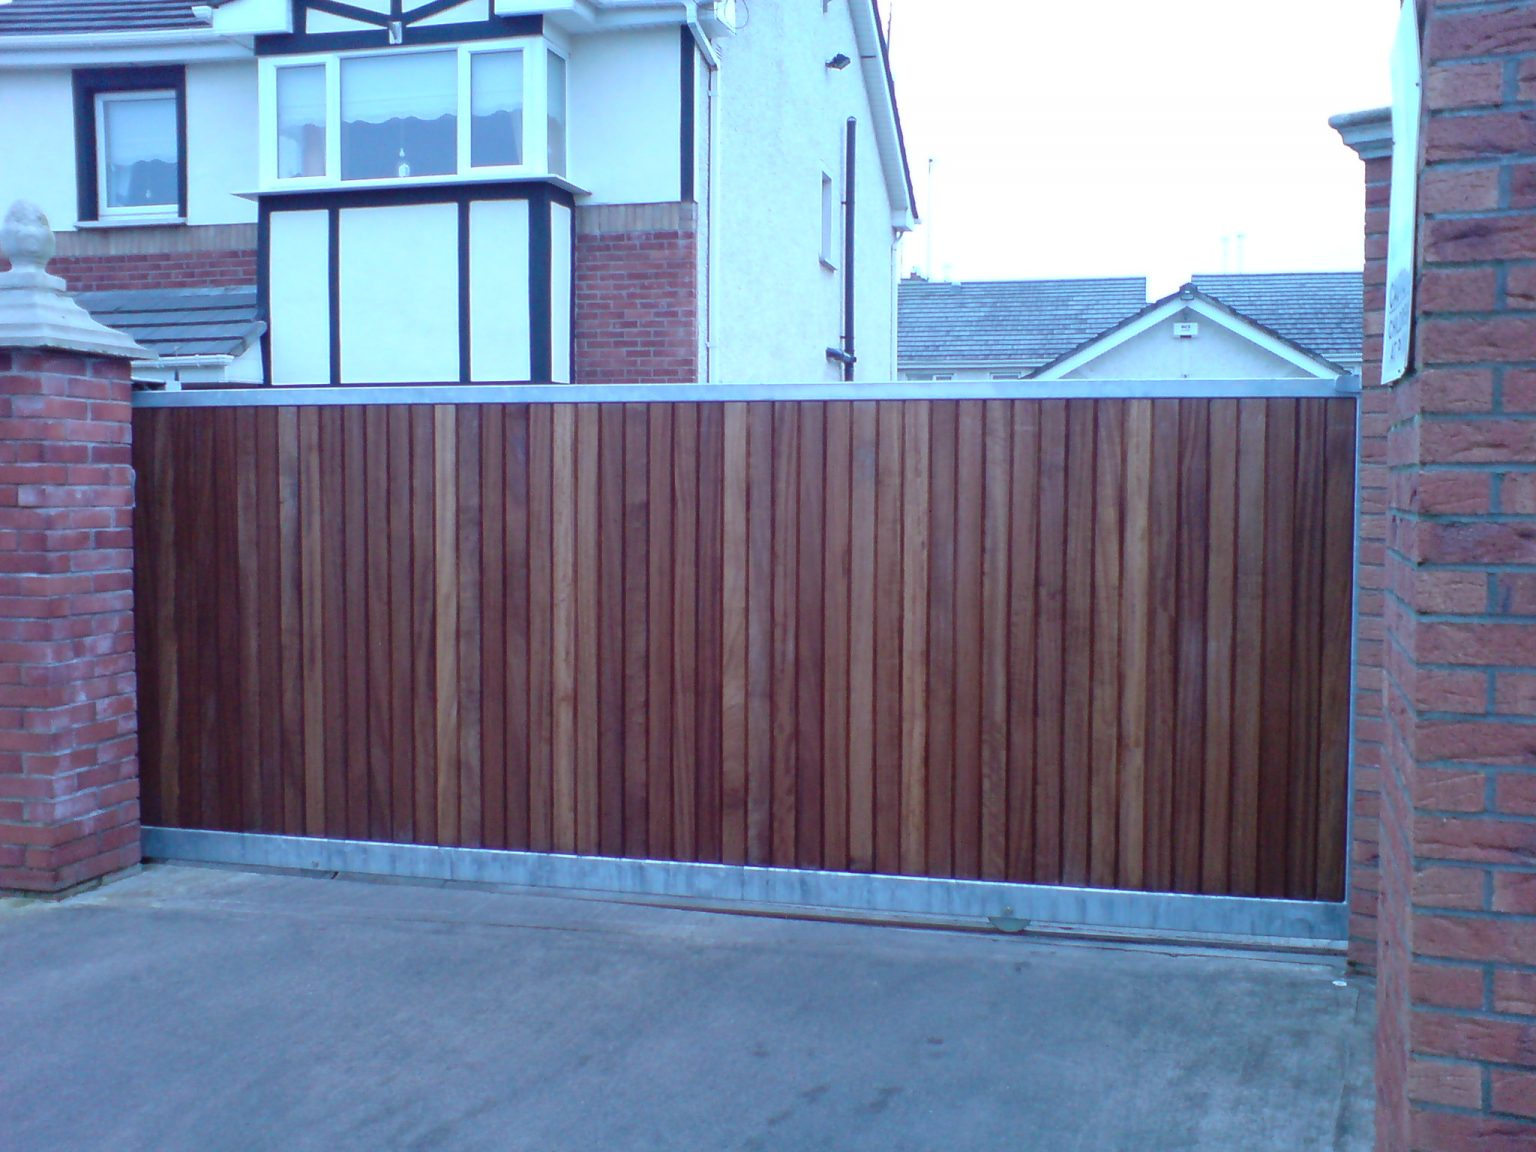 Irish Fencing & Railings Ltd. Gates Range G11 – Domestic Gates (127)